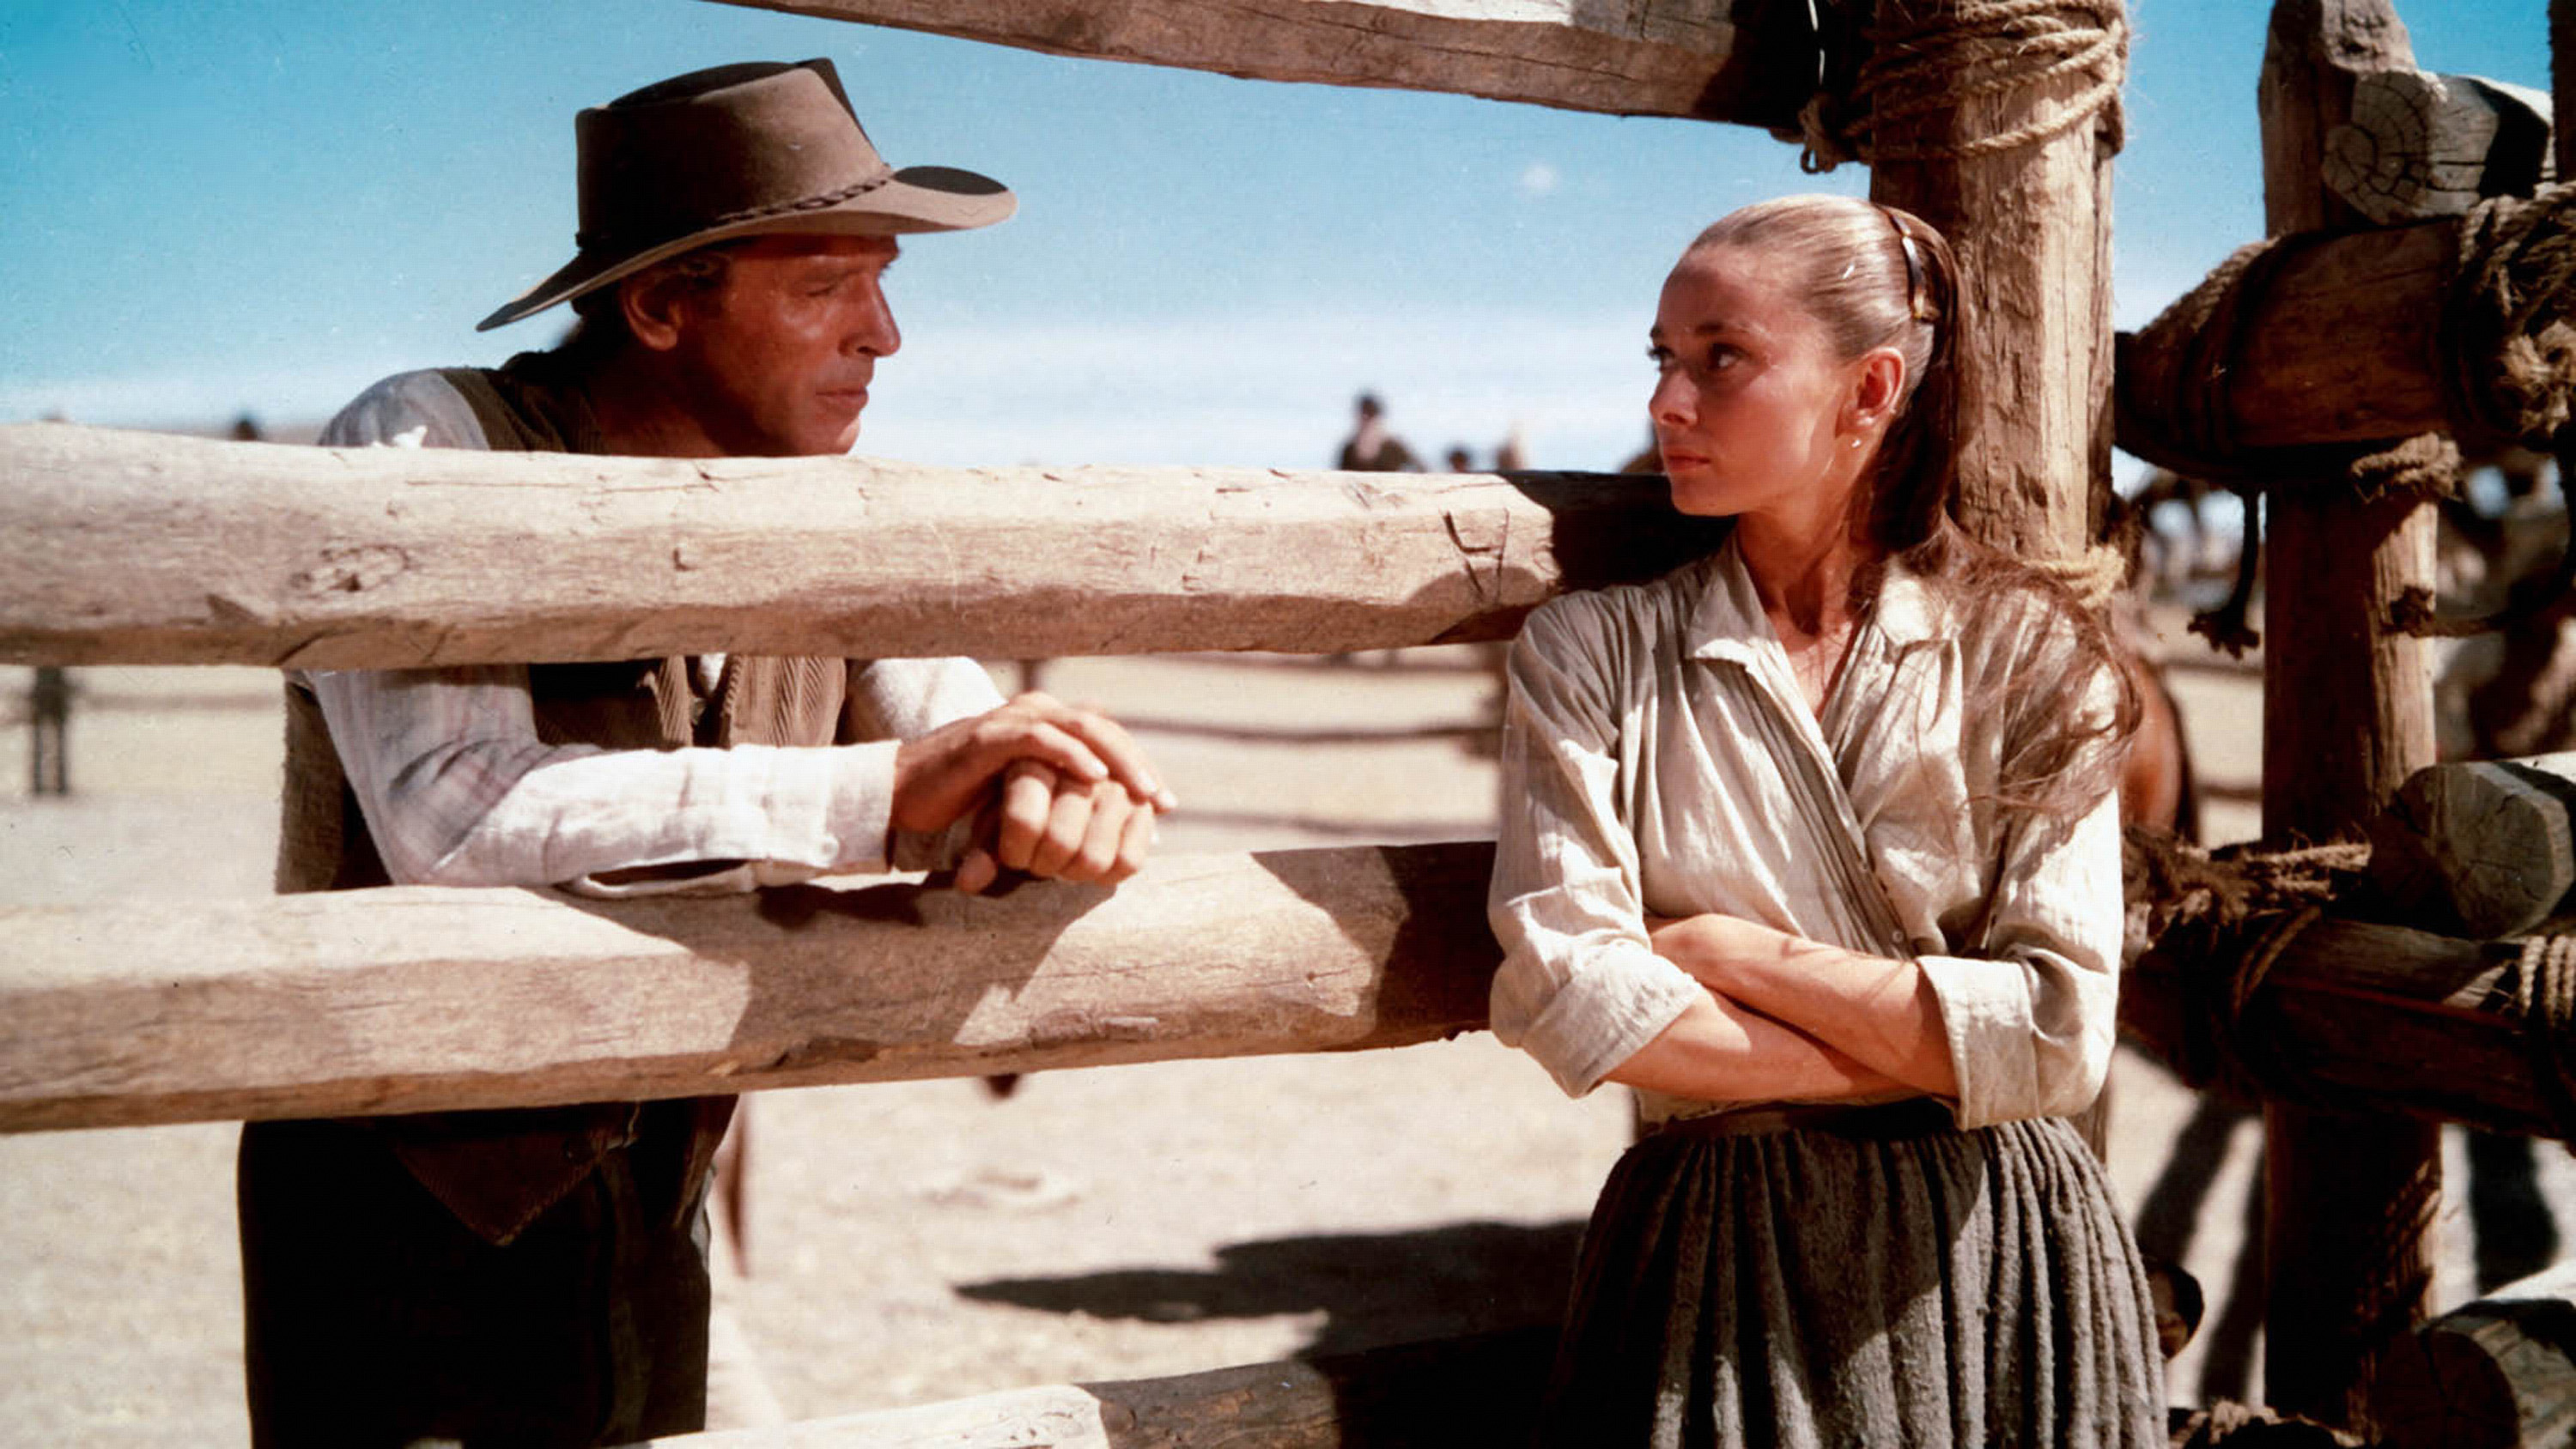 Audrey Hepburn The Unforgiven 1960 Starring Burt